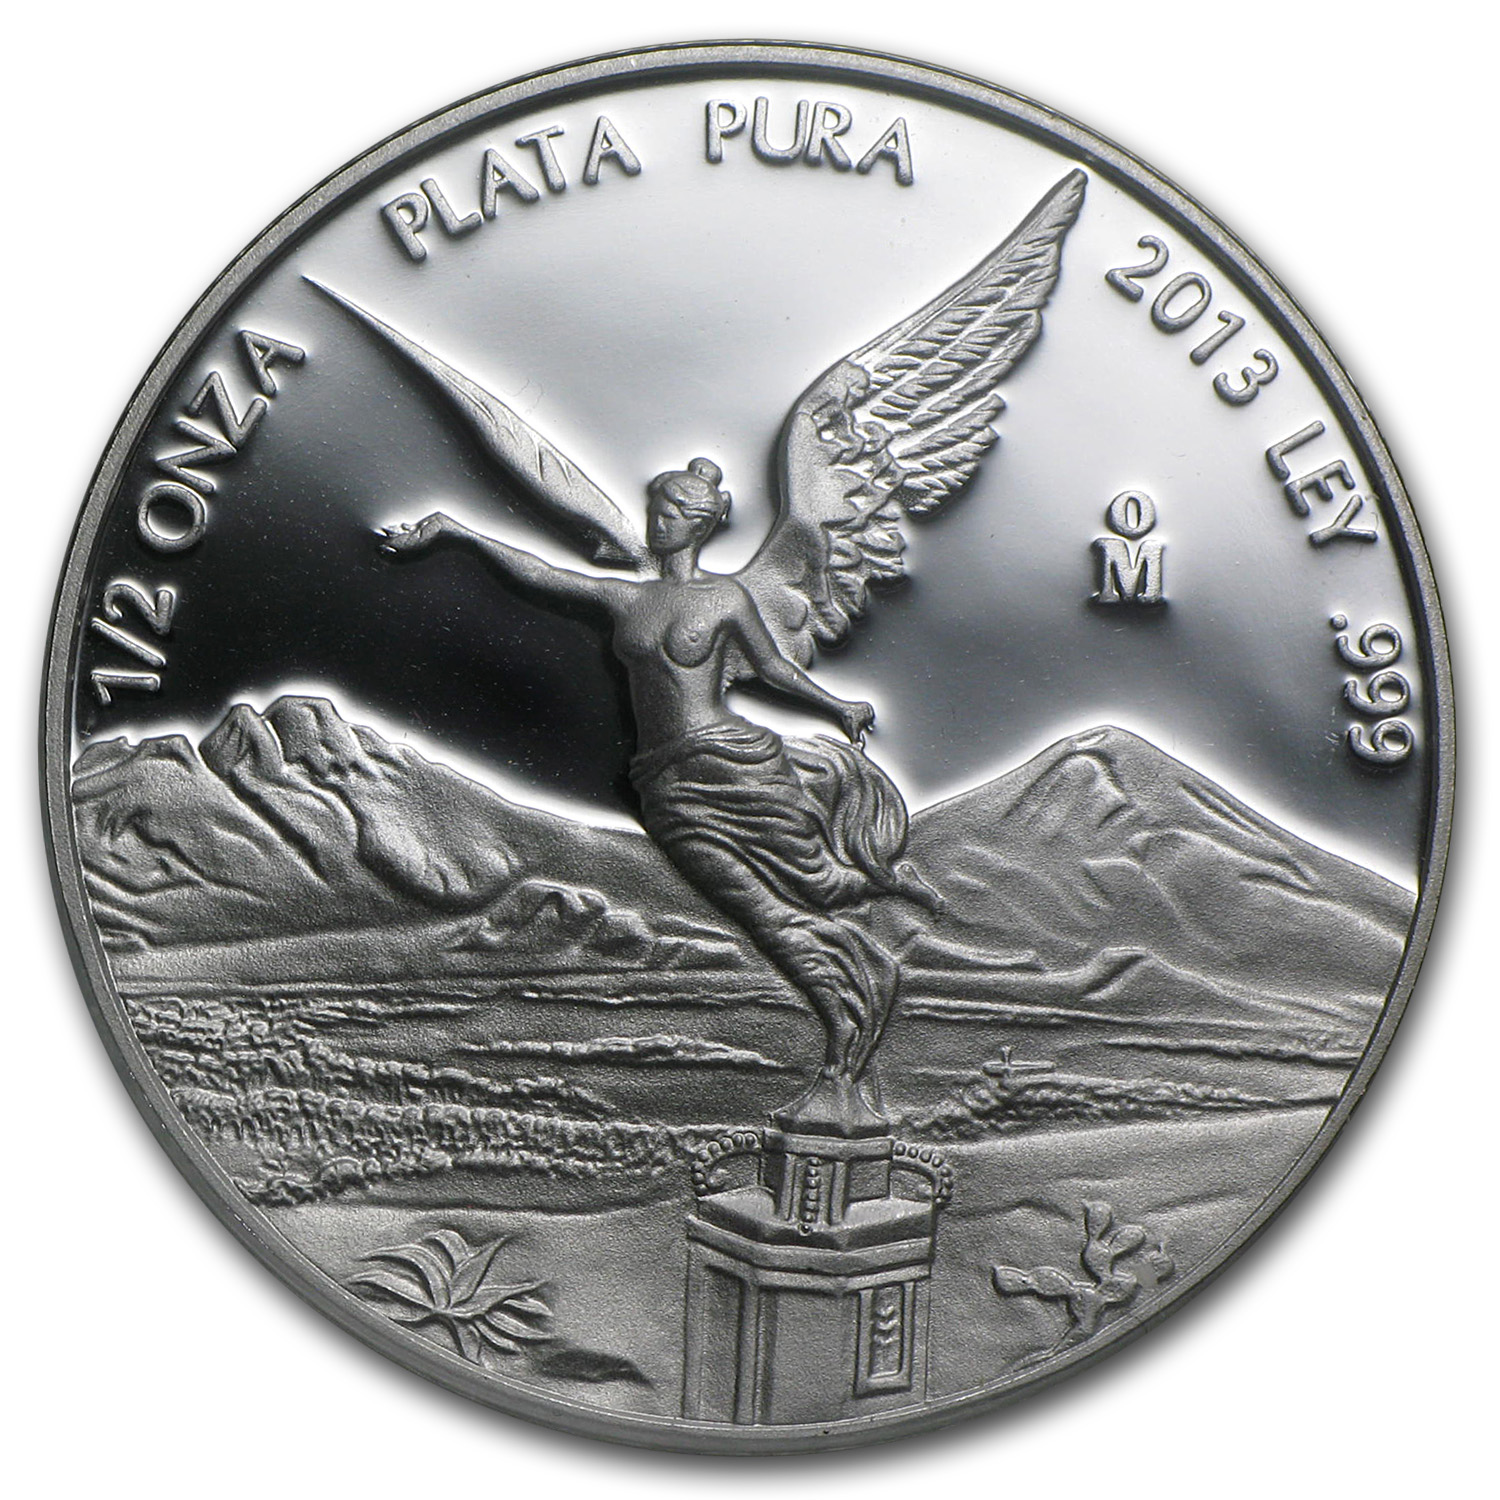 2013 1/2 oz Silver Mexican Libertad - Proof (In Capsule)